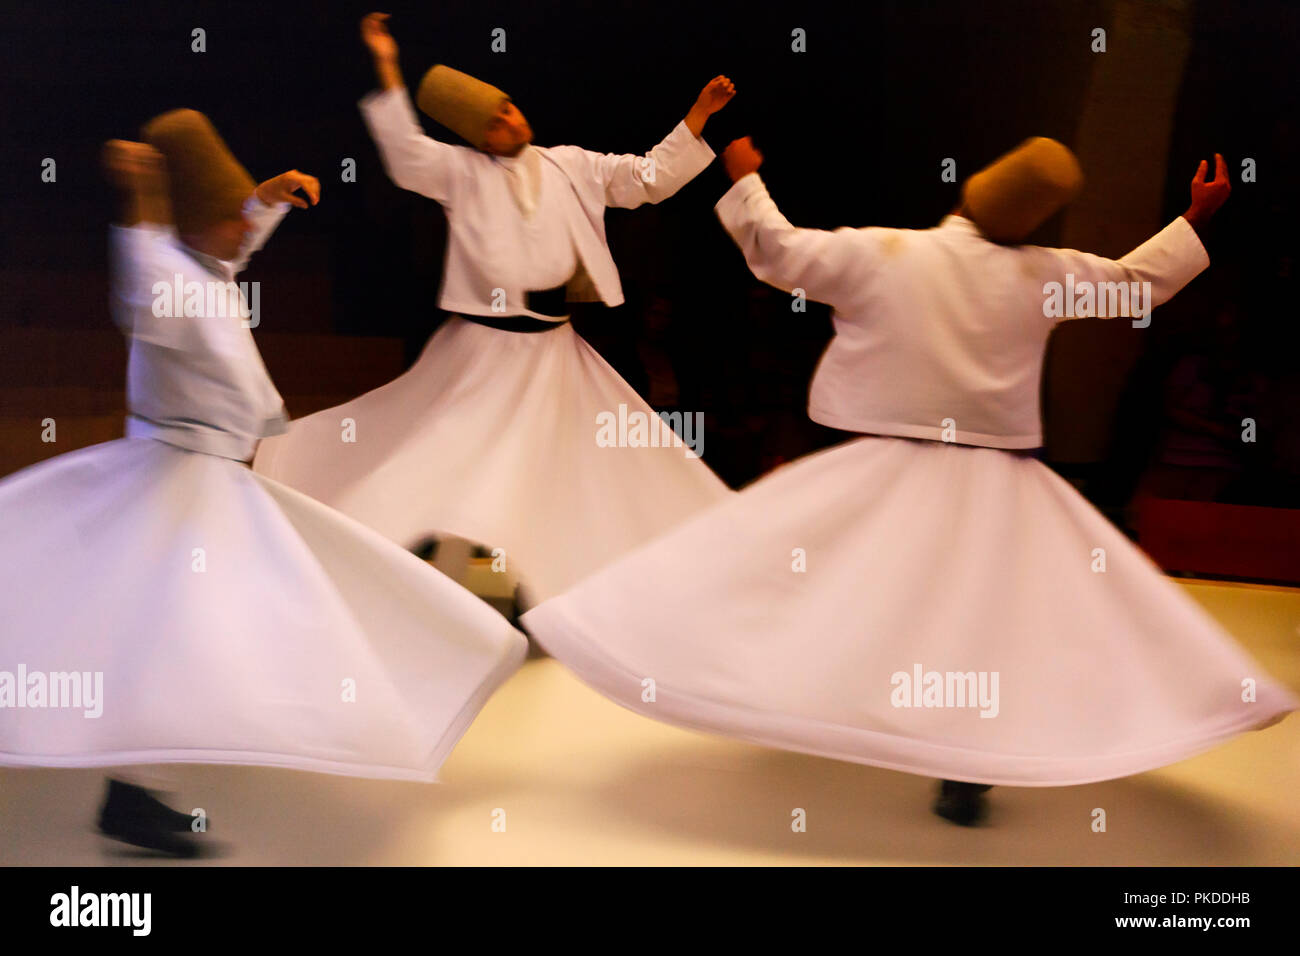 Whirling dervishes dancing, Goreme, Cappadocia, Turkey - Stock Image